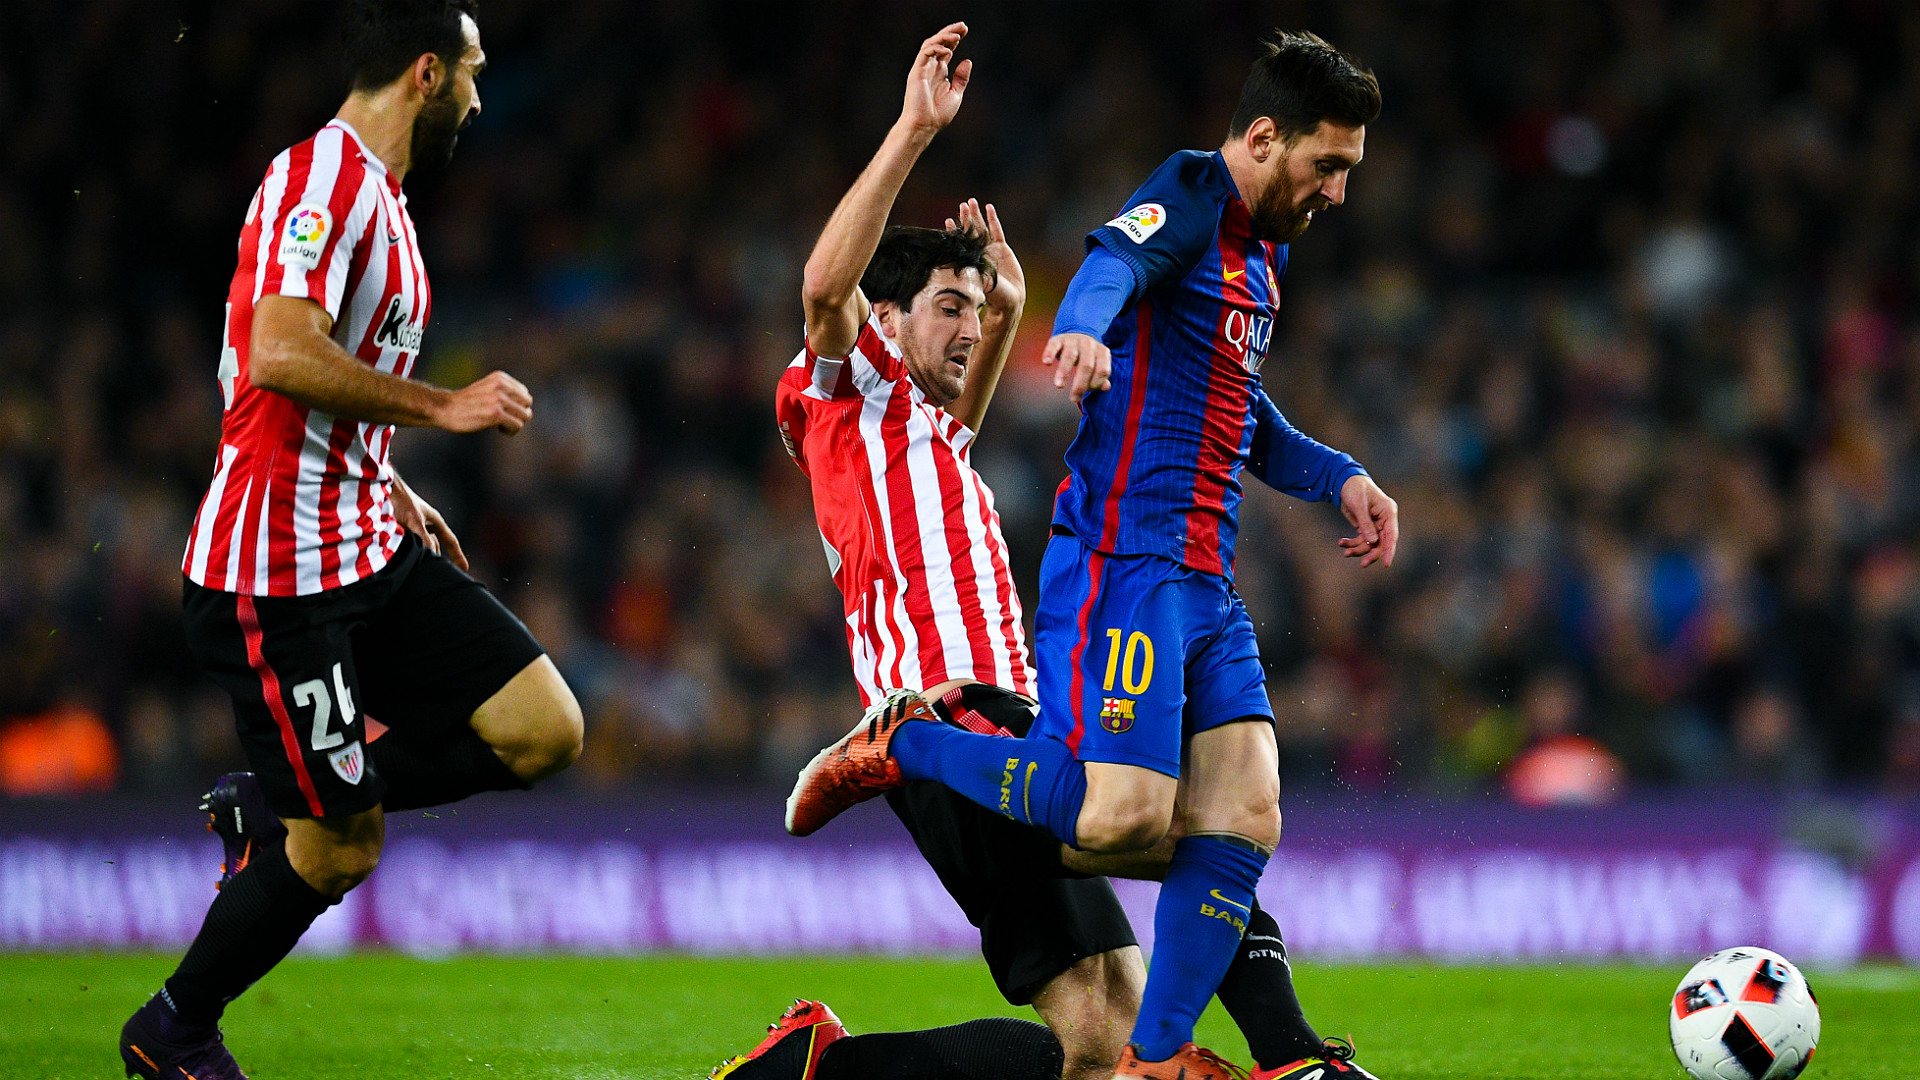 Suarez messi shows he is the best every game goal - Barcelona san jose ...